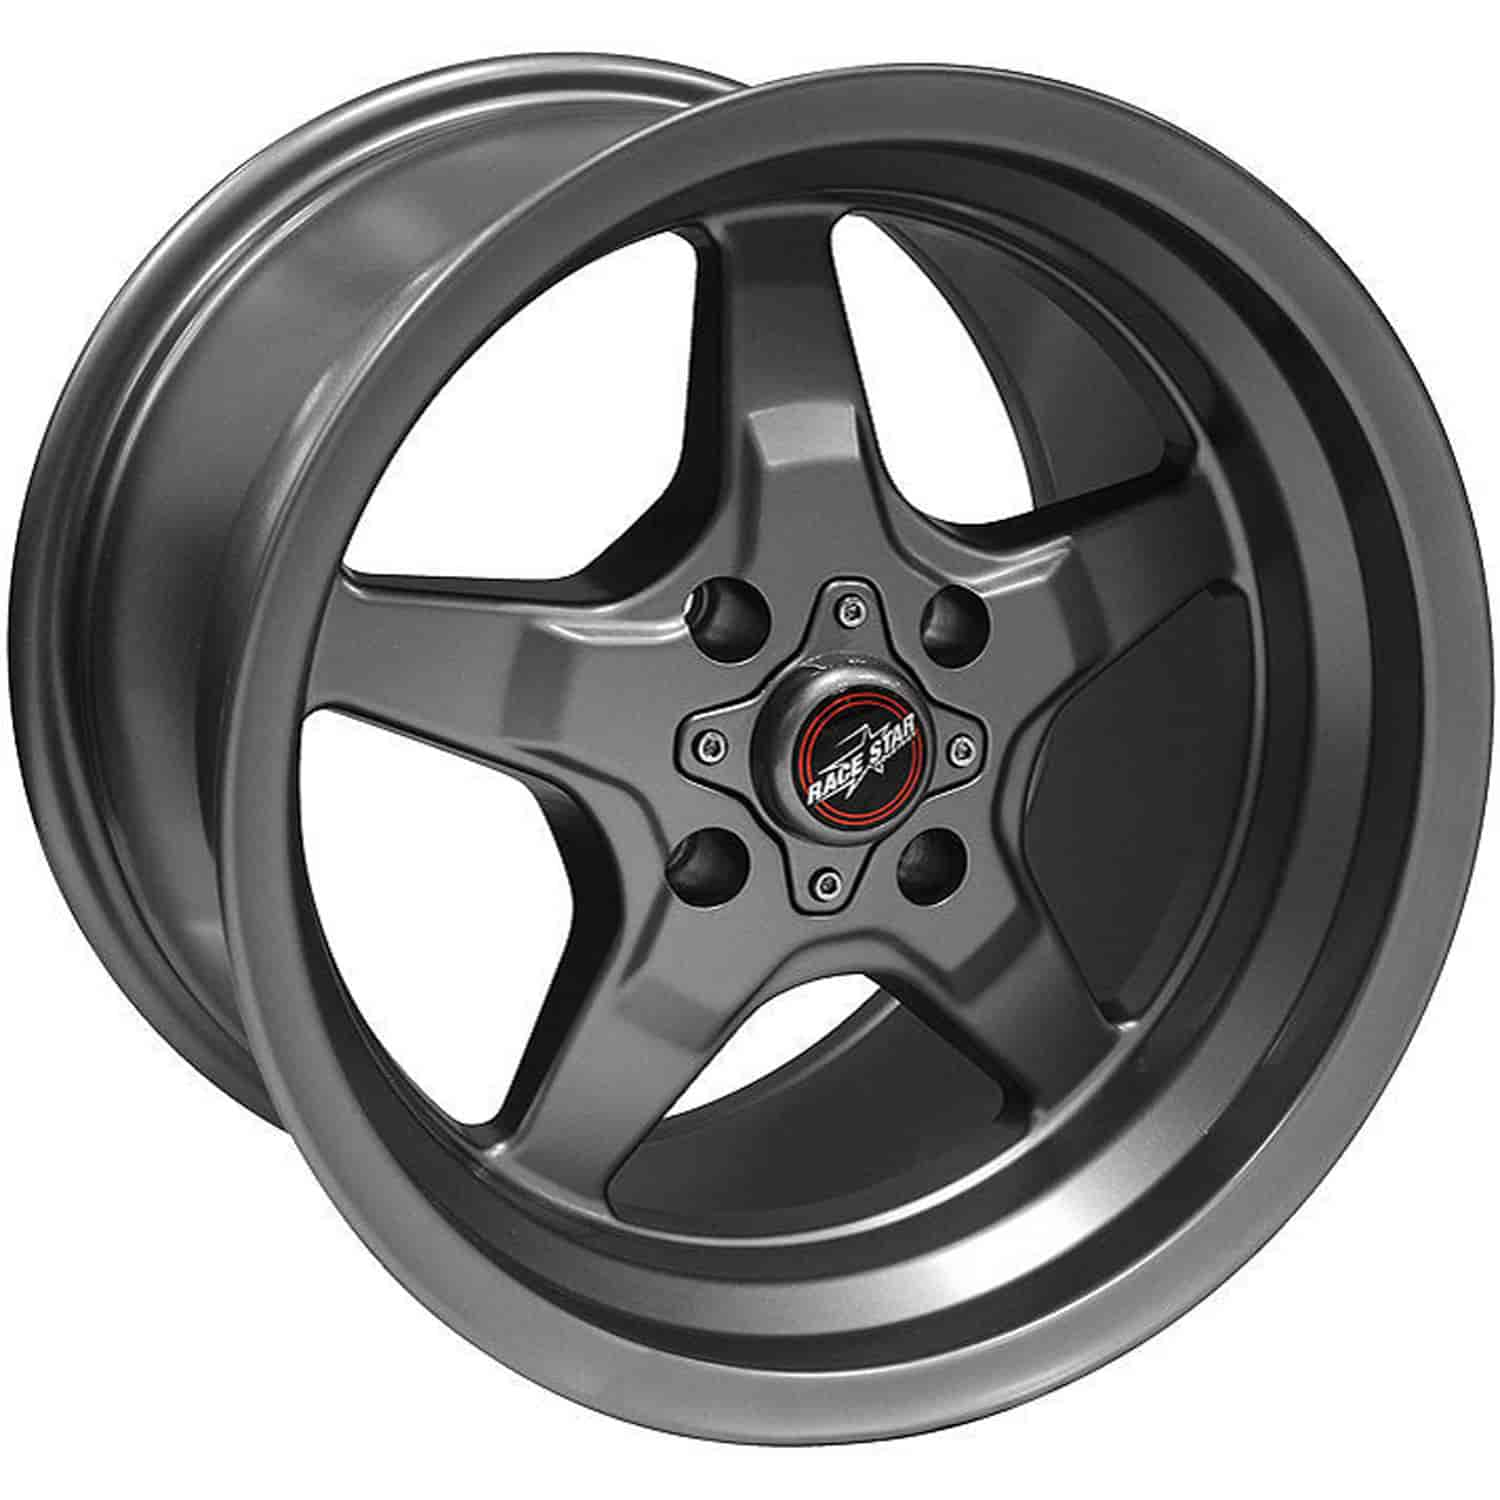 Race Star Wheels 91-580030G